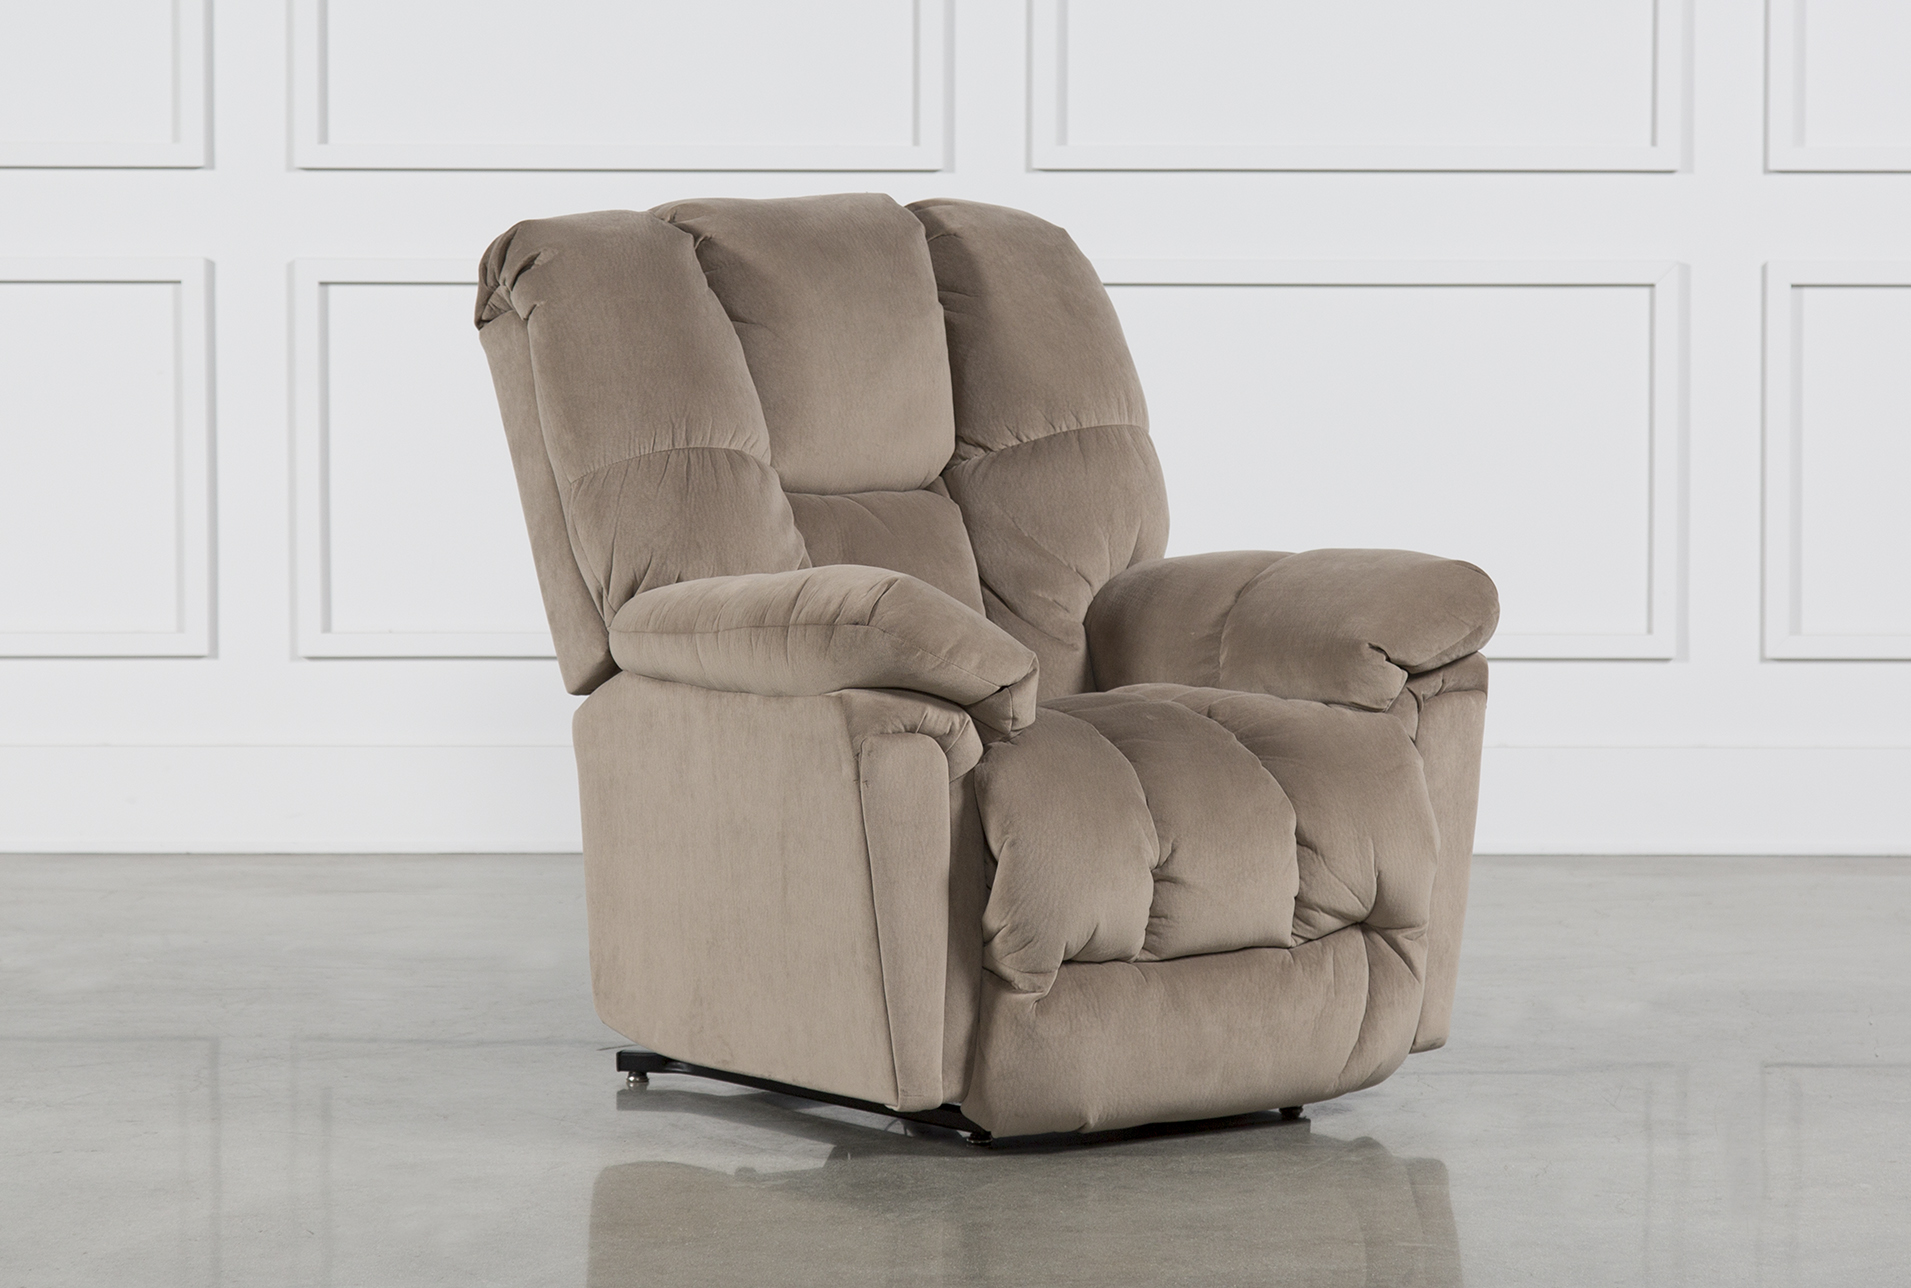 Maurer Power-Lift Recliner (Qty: 1) has been successfully added to your  Cart.